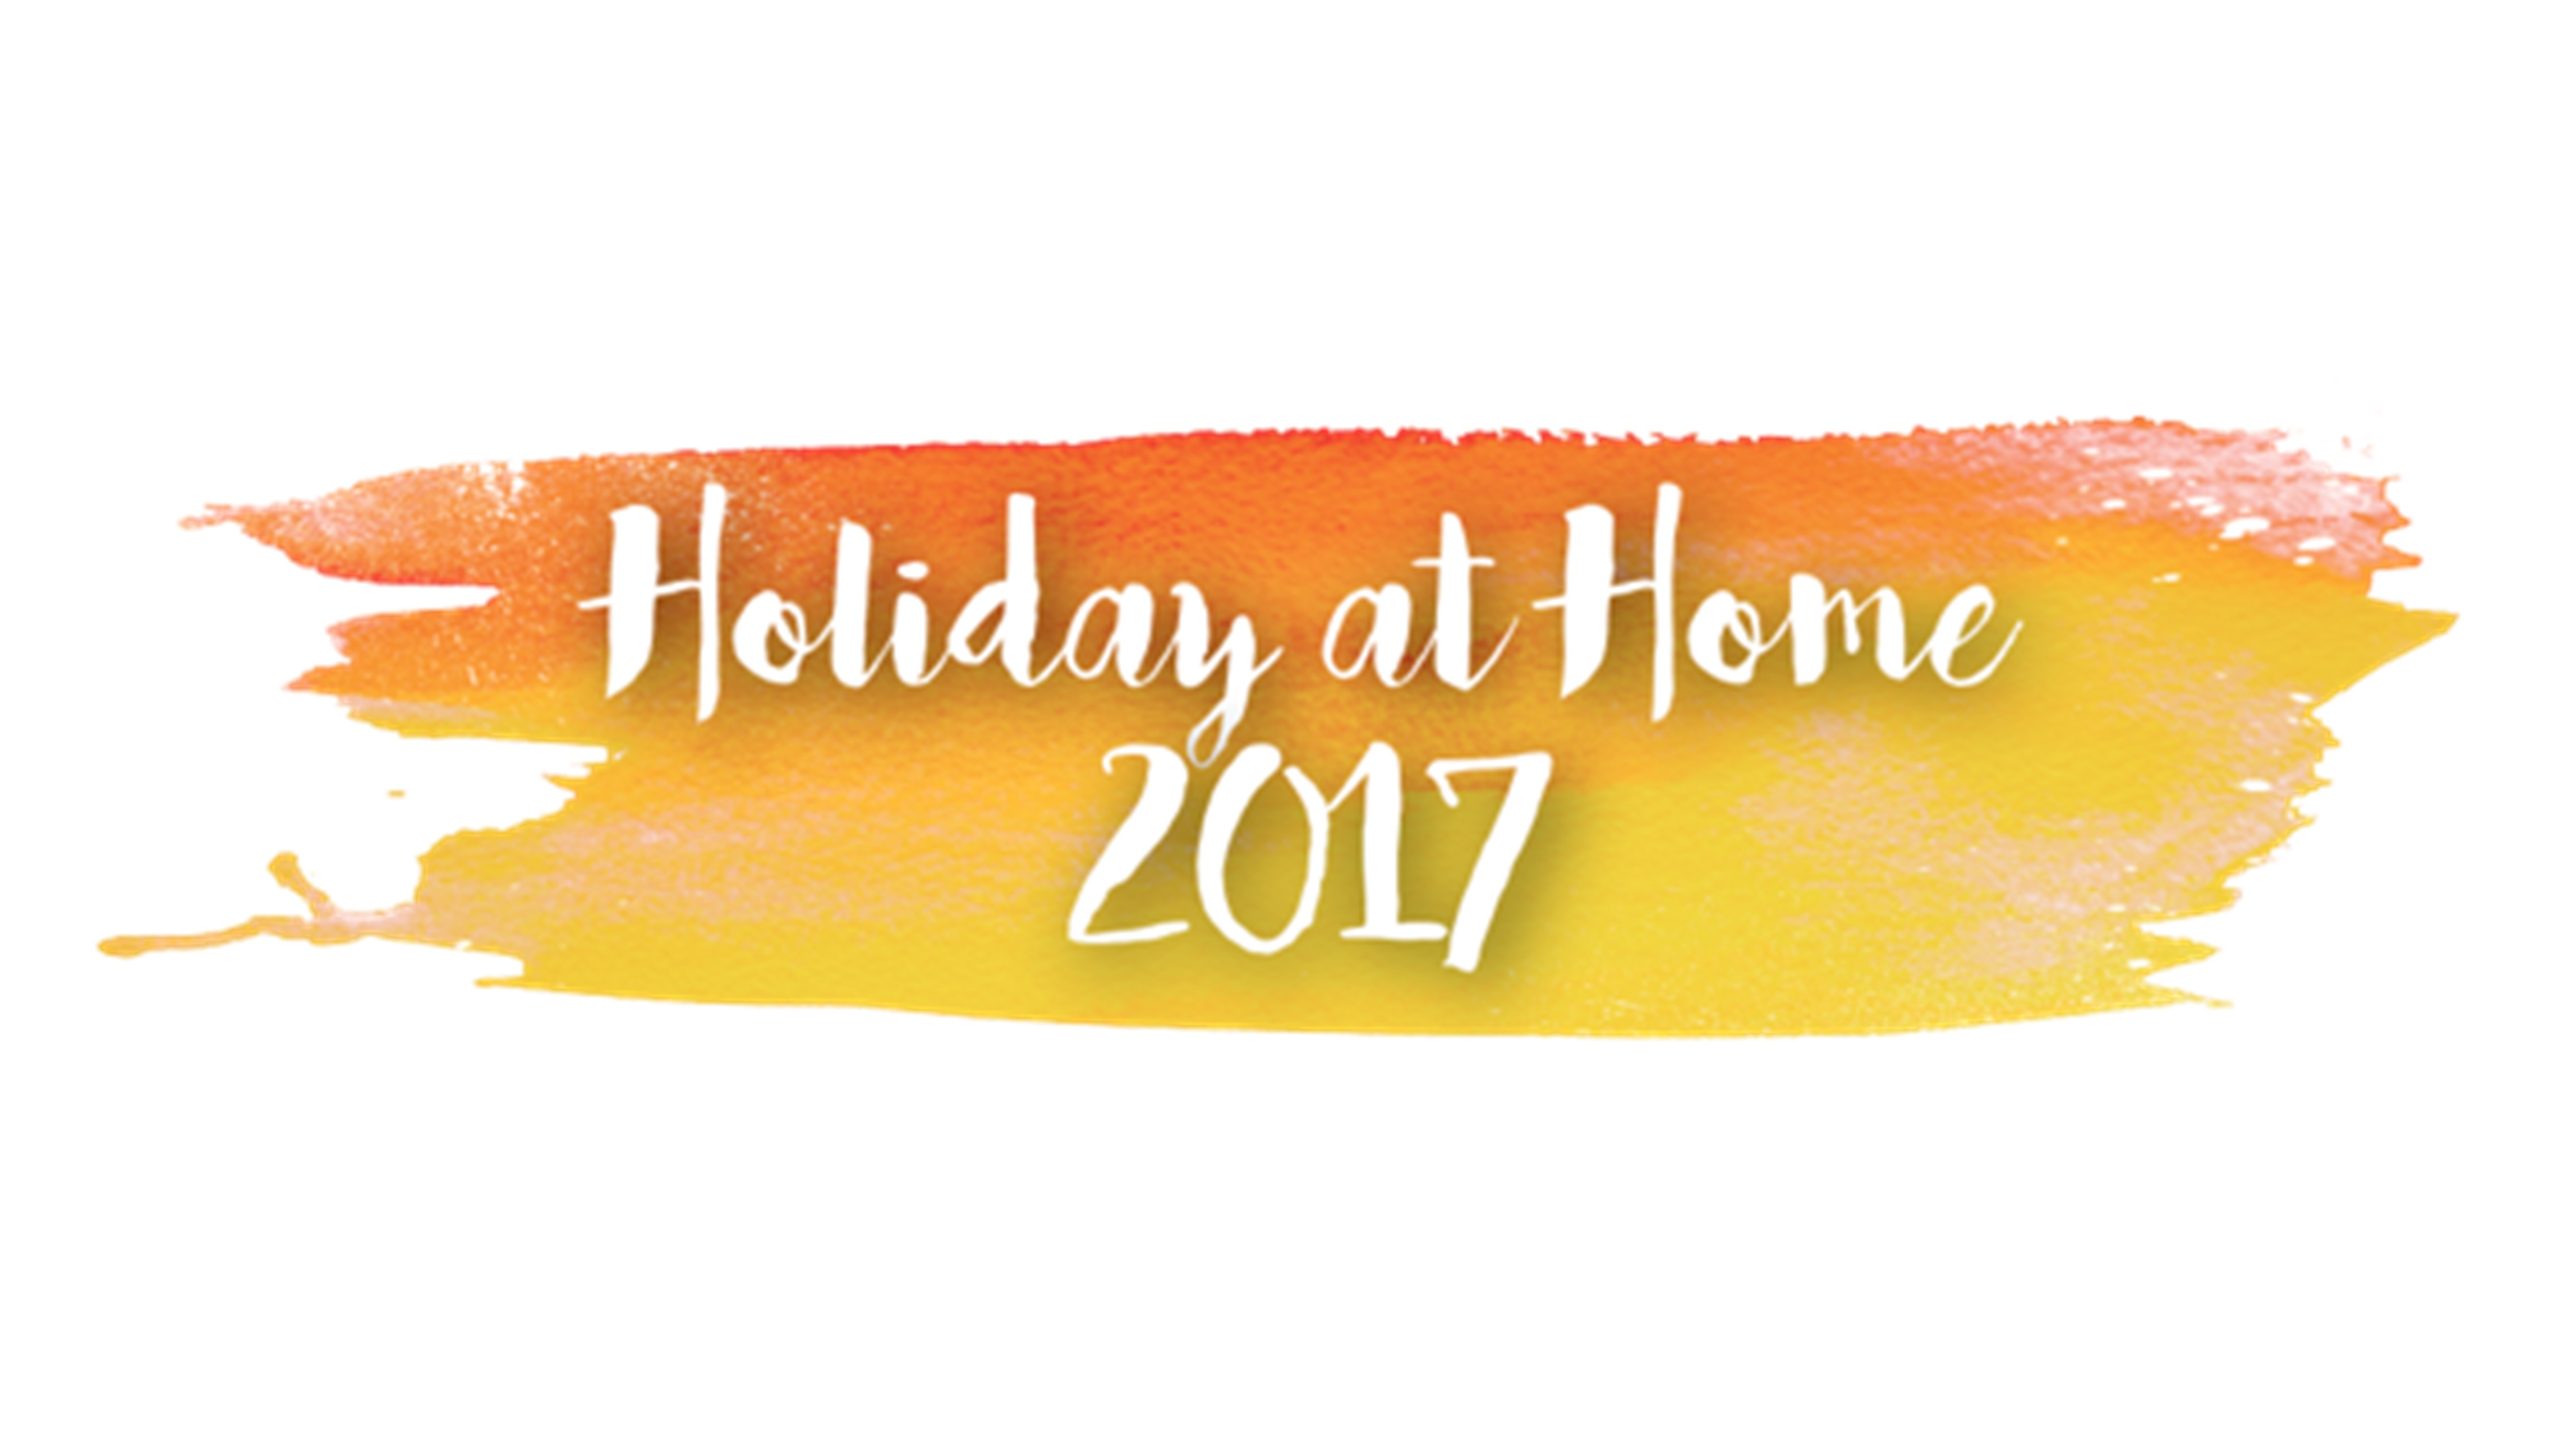 Holiday at Home 2017